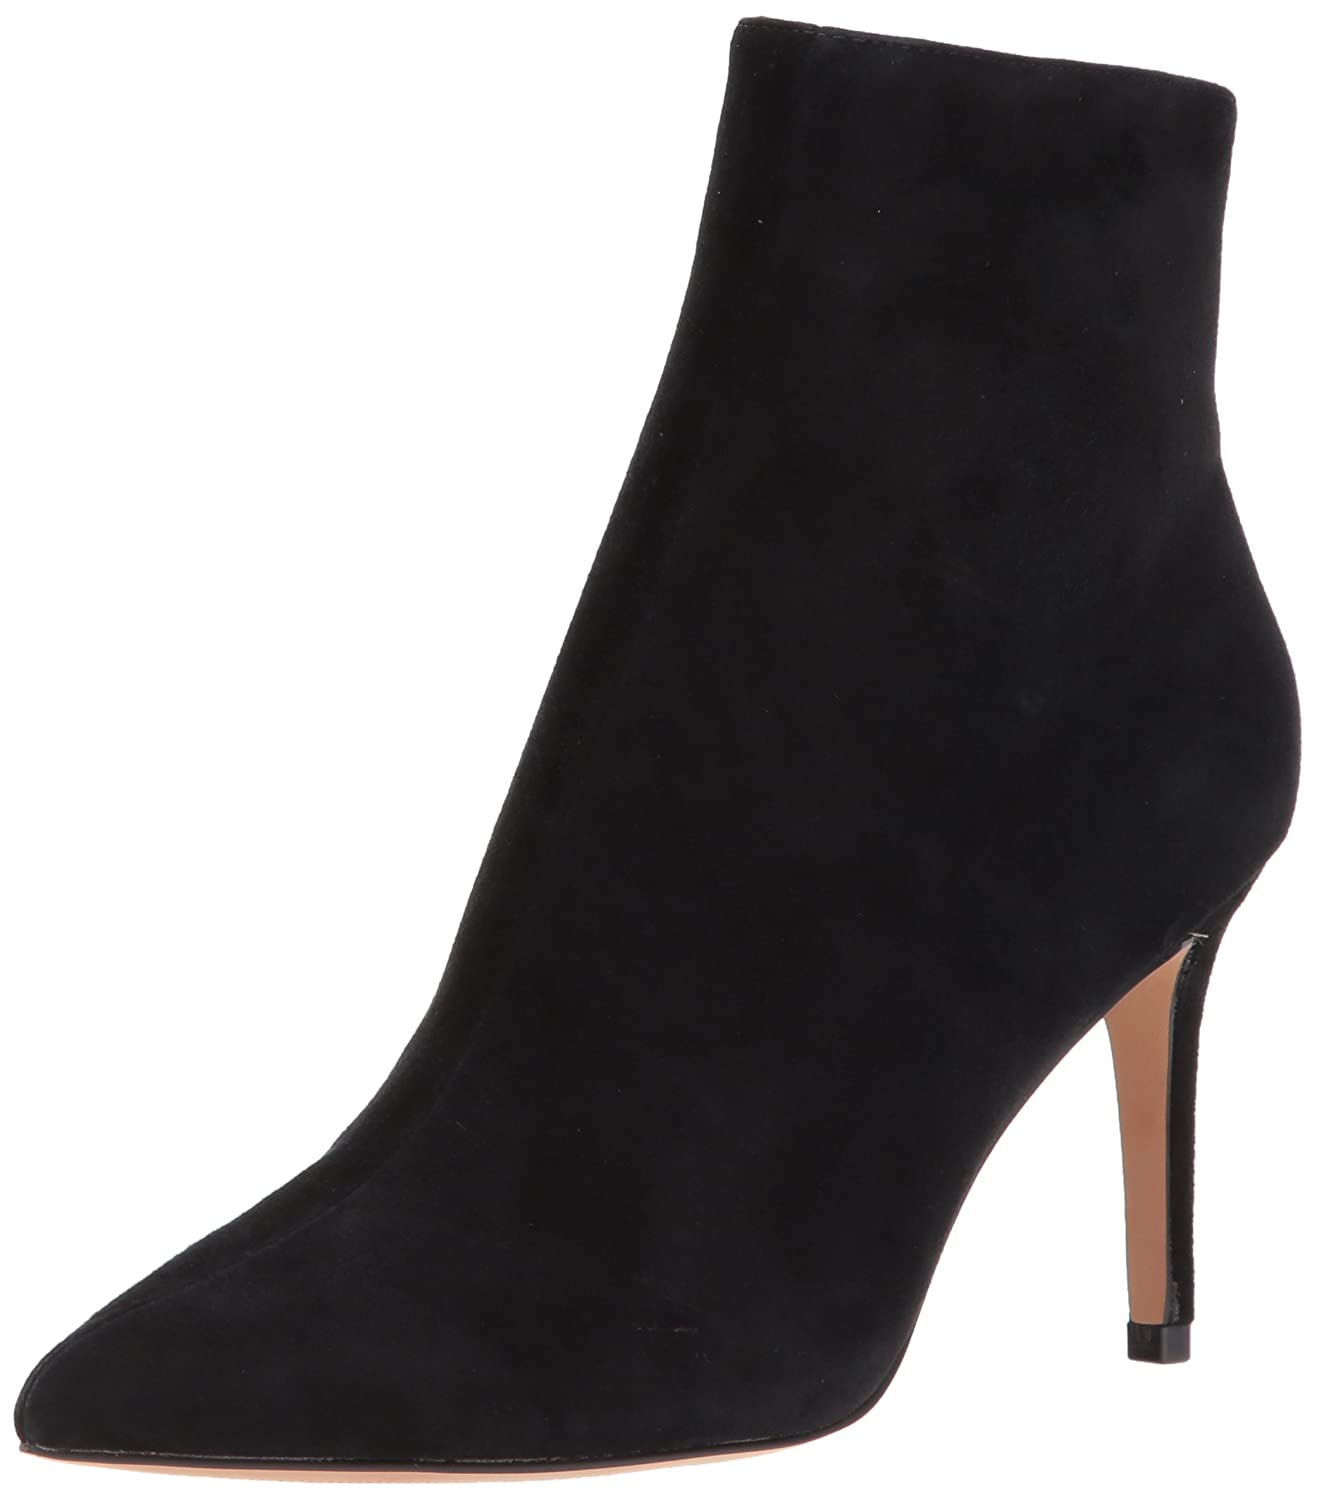 STEVEN by Steve Madden Women's Logic Ankle Boot B073SFWX9B 8 B(M) US|Black Suede